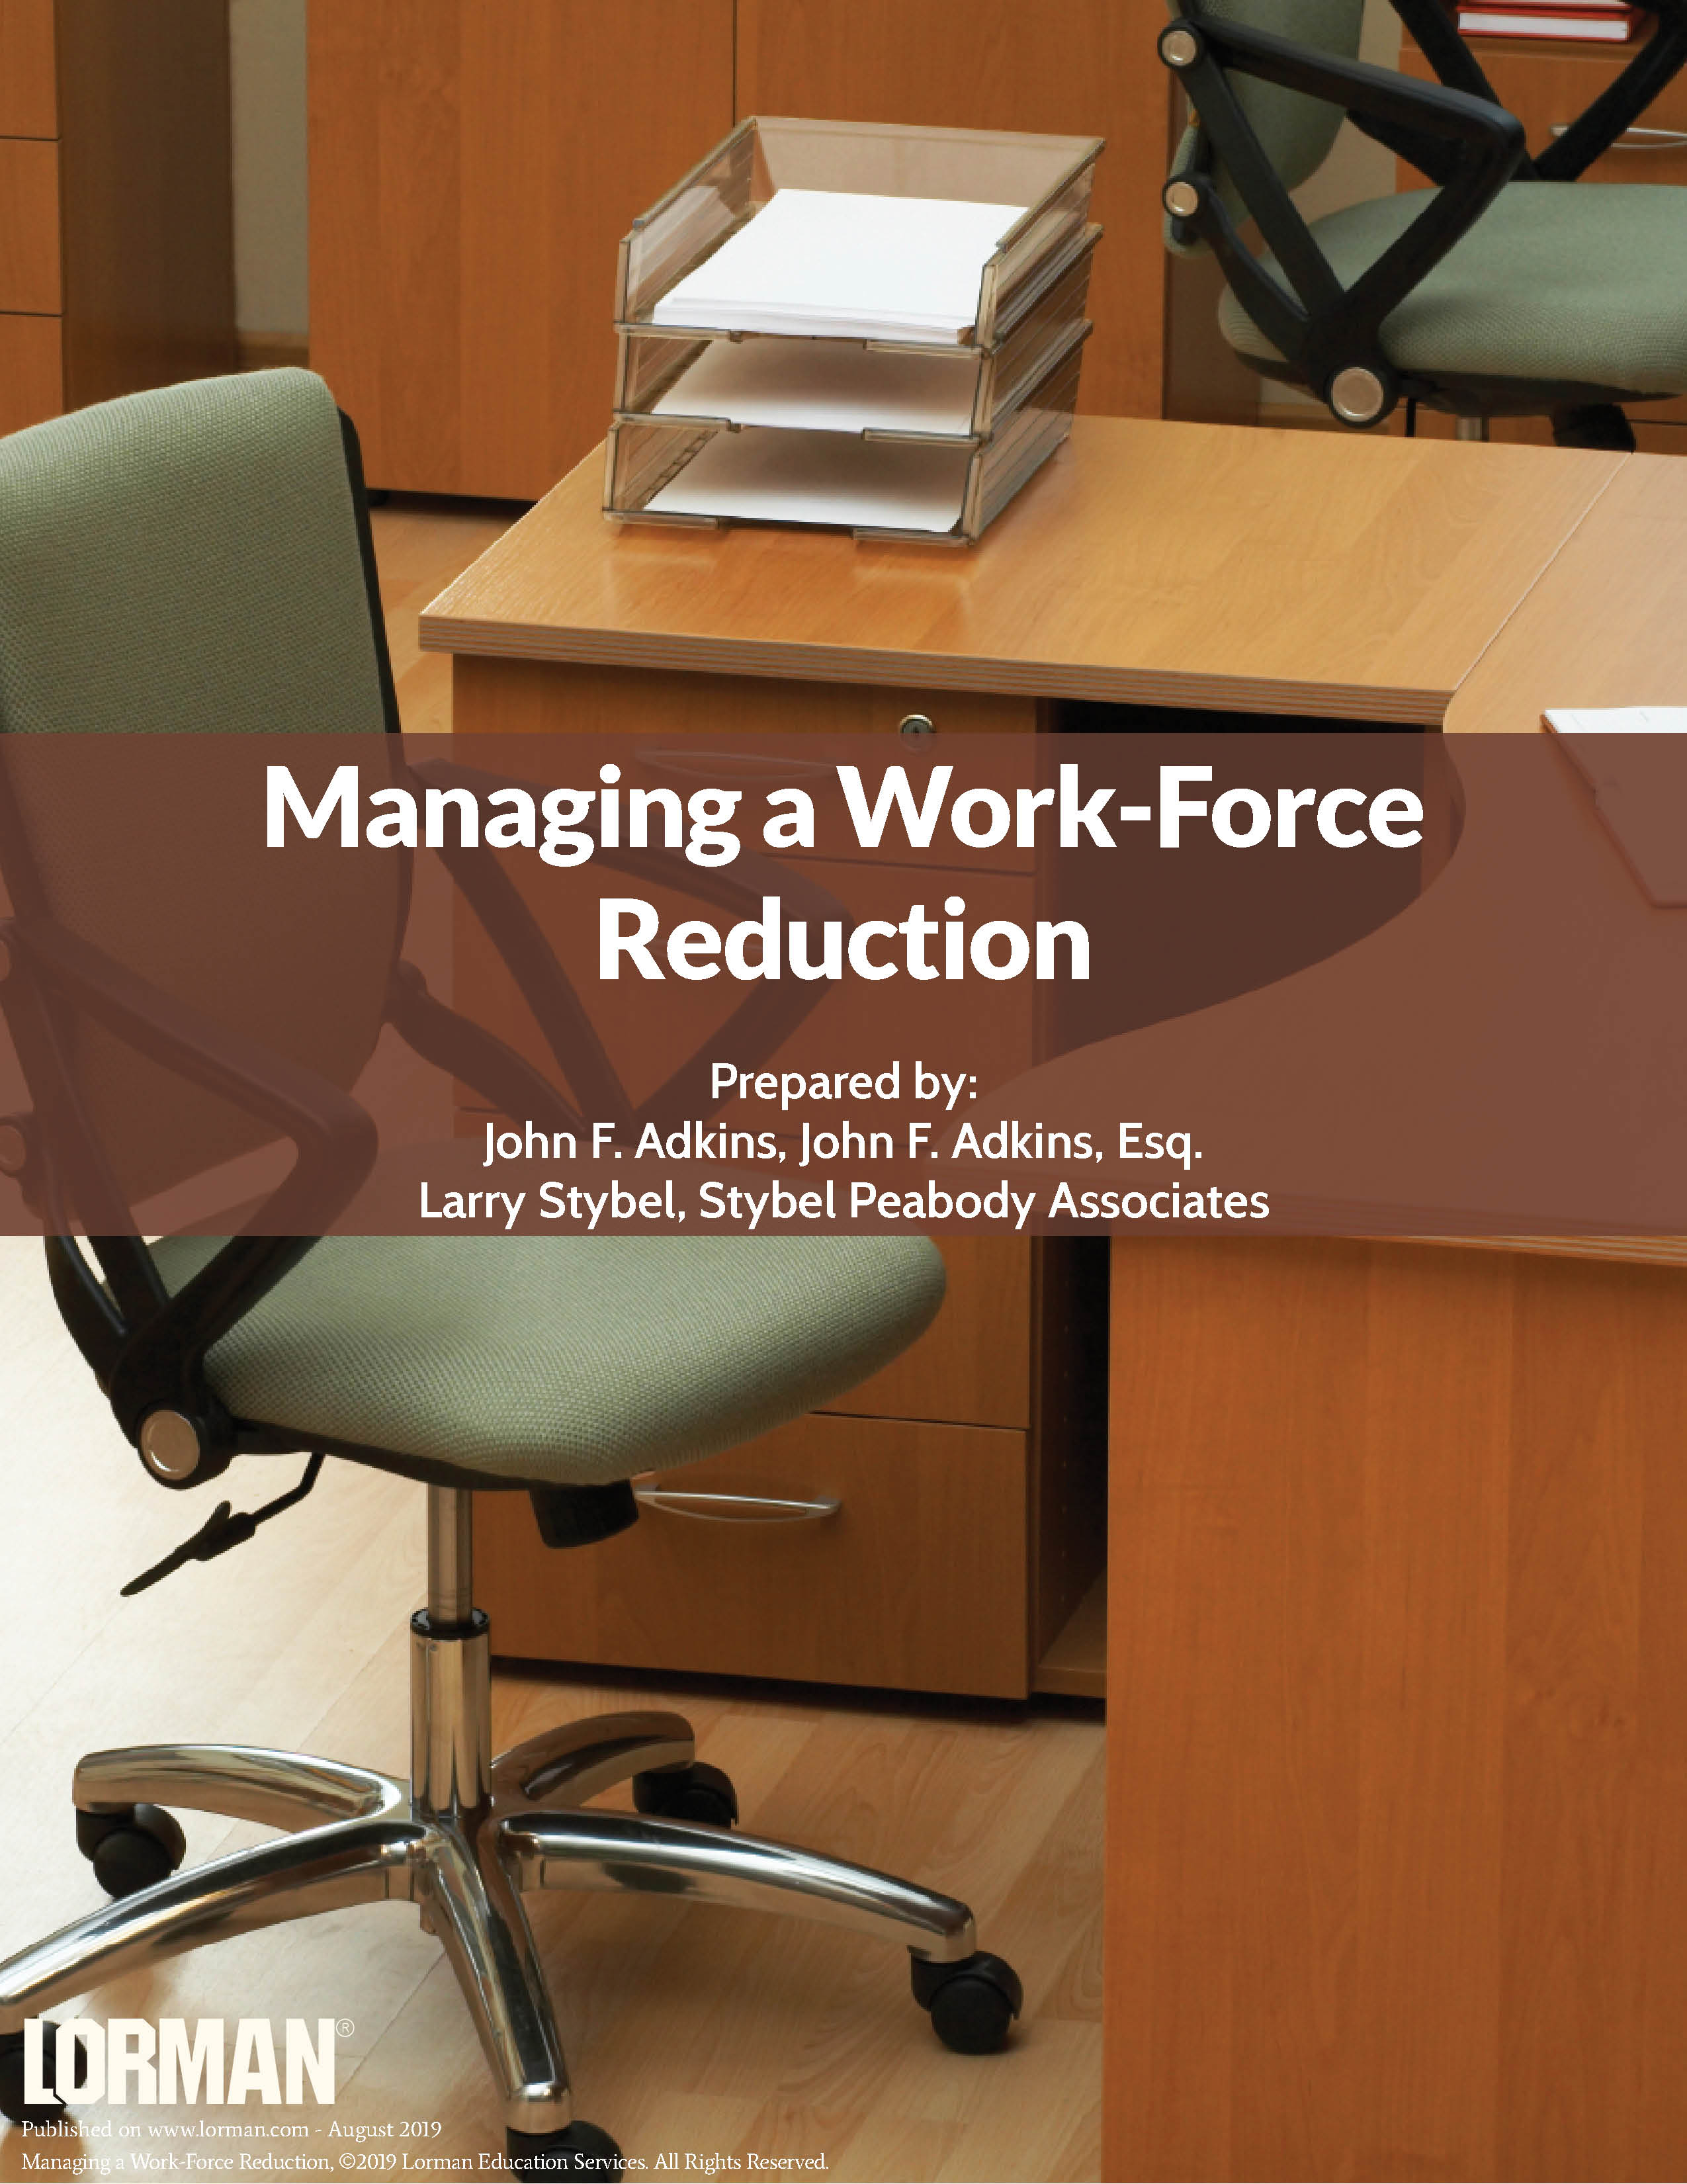 Managing a Work-Force Reduction